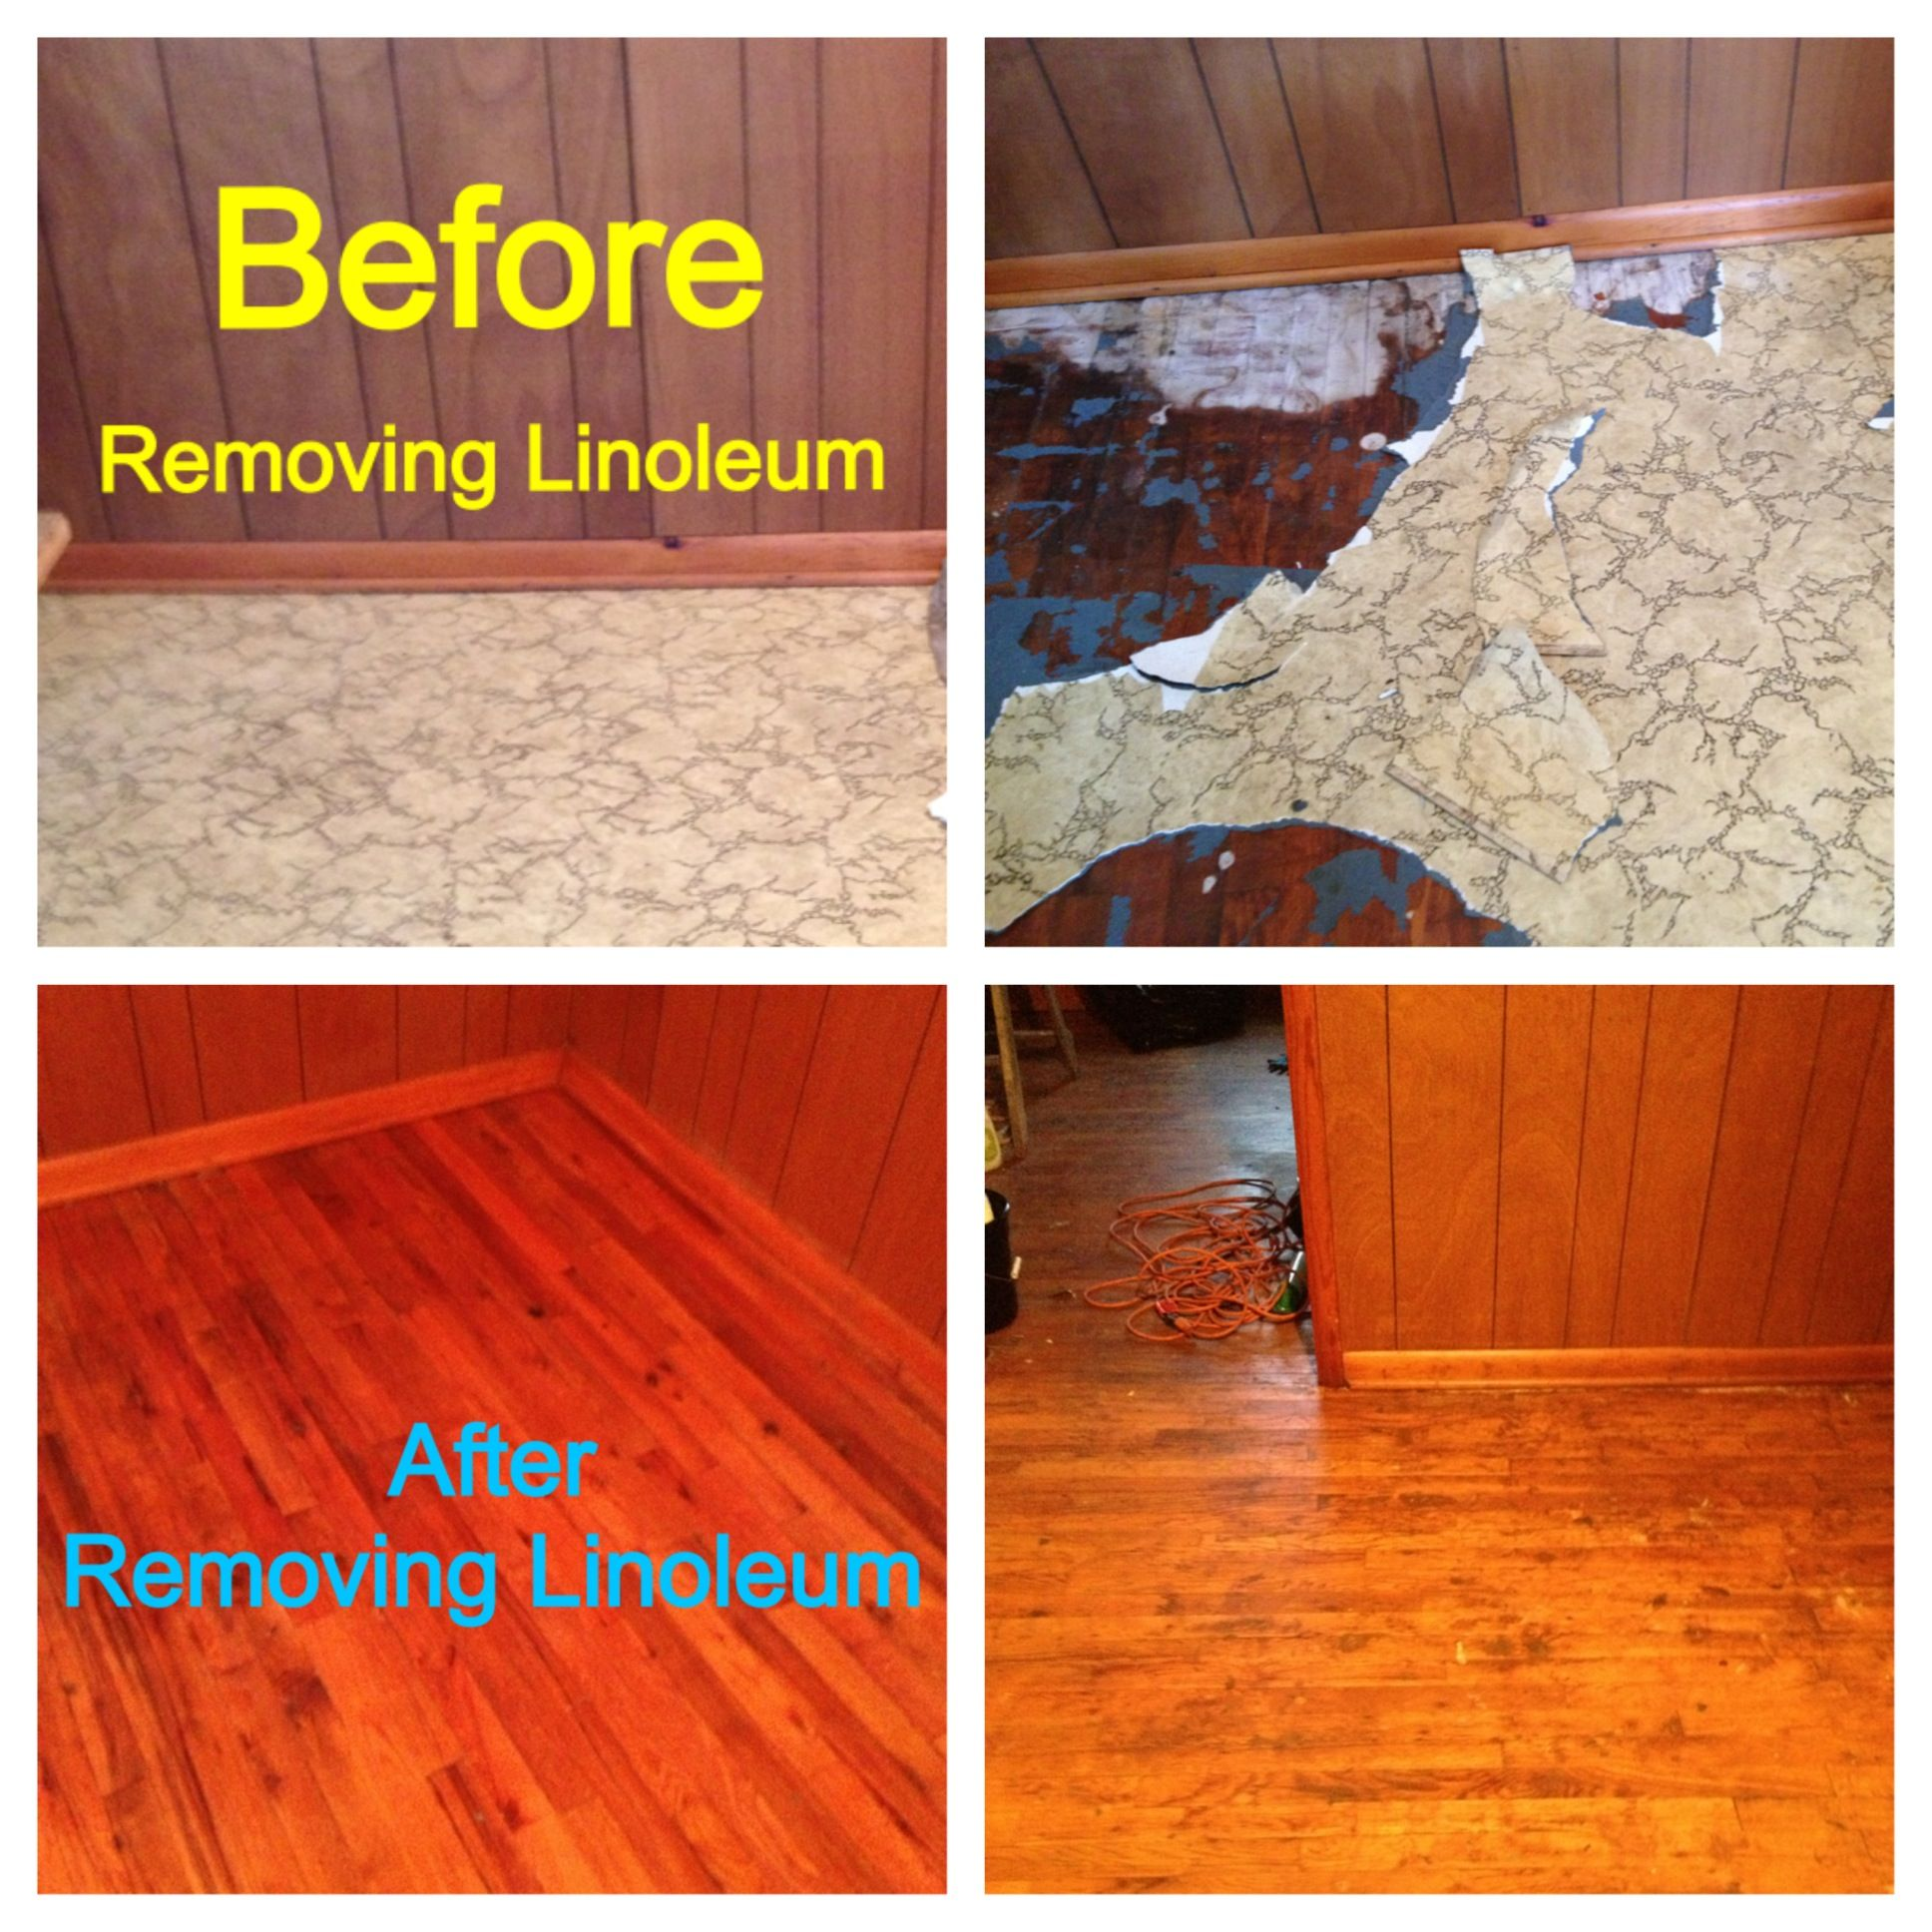 Remove Linoleum From Hardwoods Without Sanding Or Damaging The